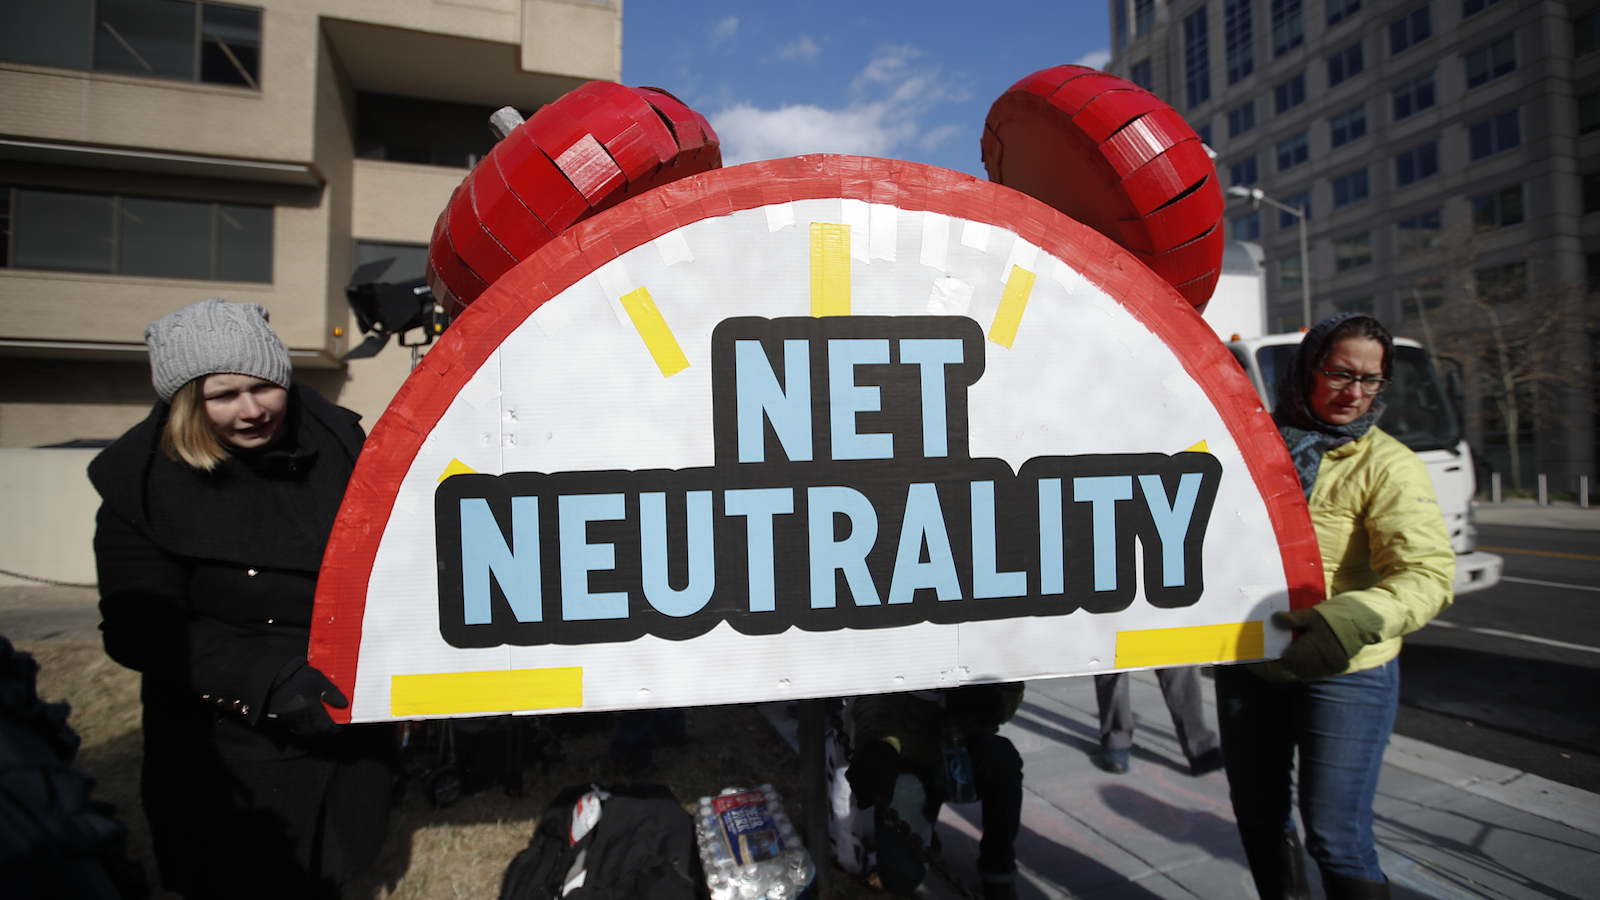 Net Neutrality is no more